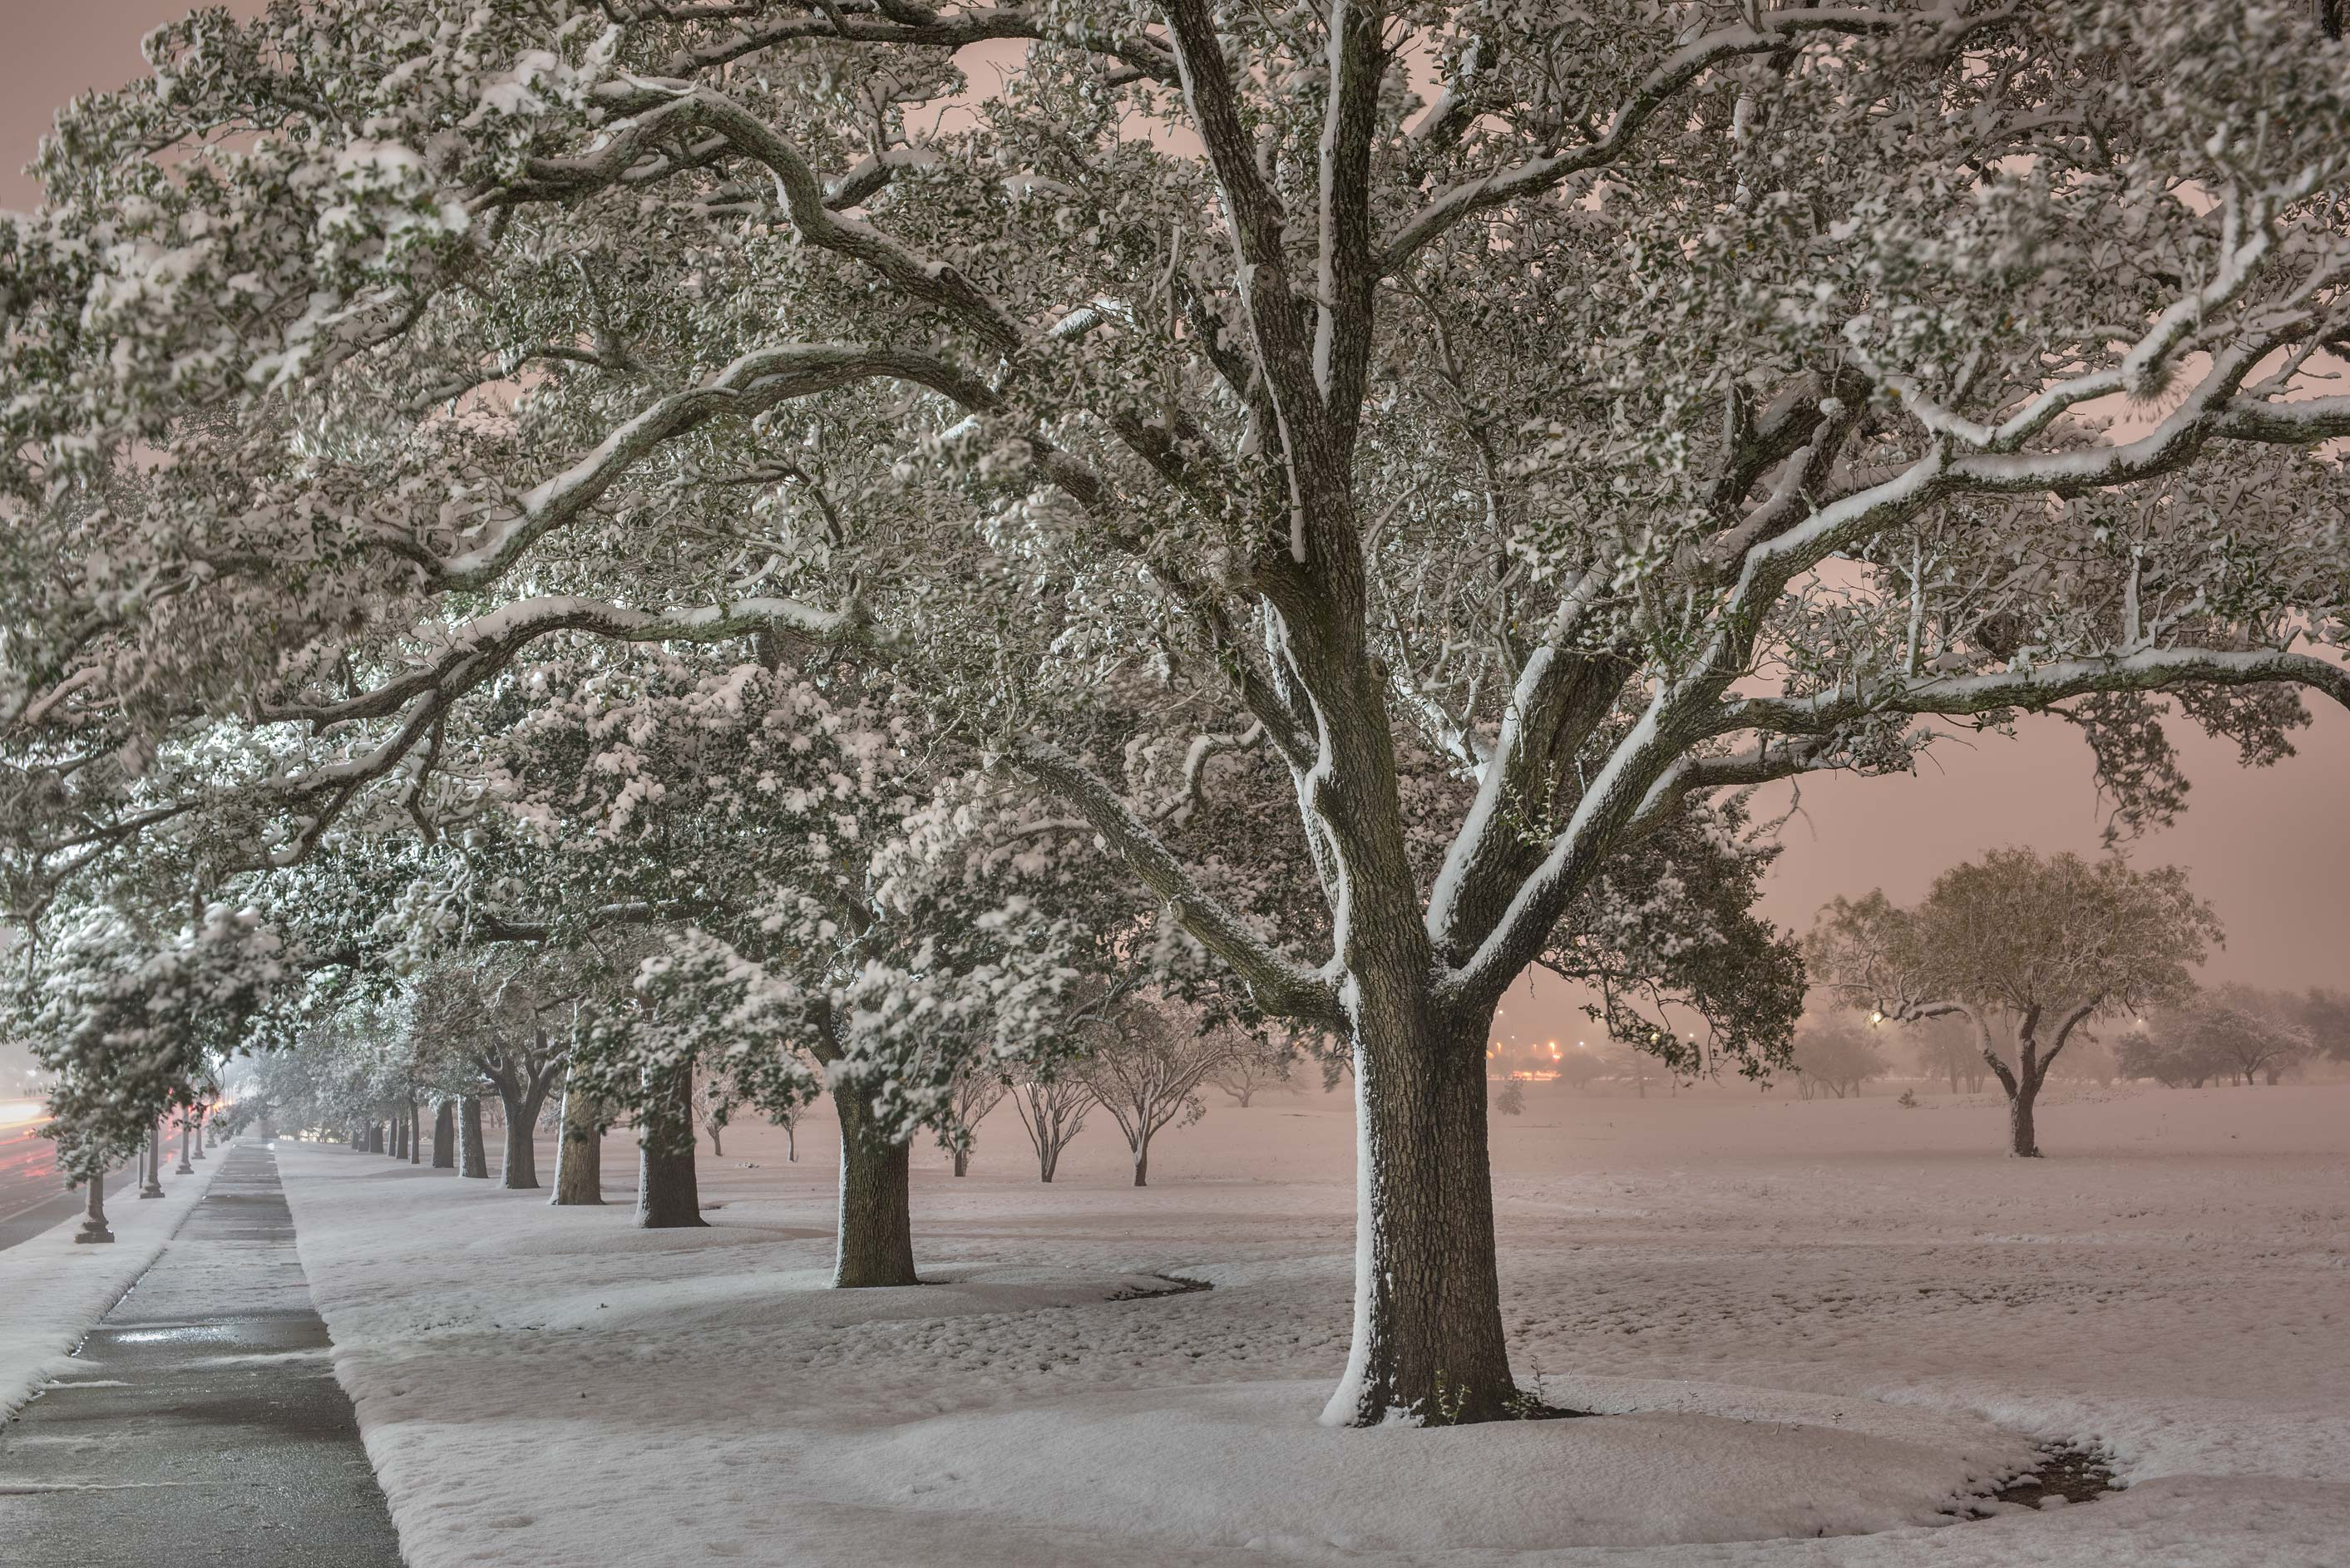 Oak alley in snow of New Main Rd. on campus of...M University. College Station, Texas